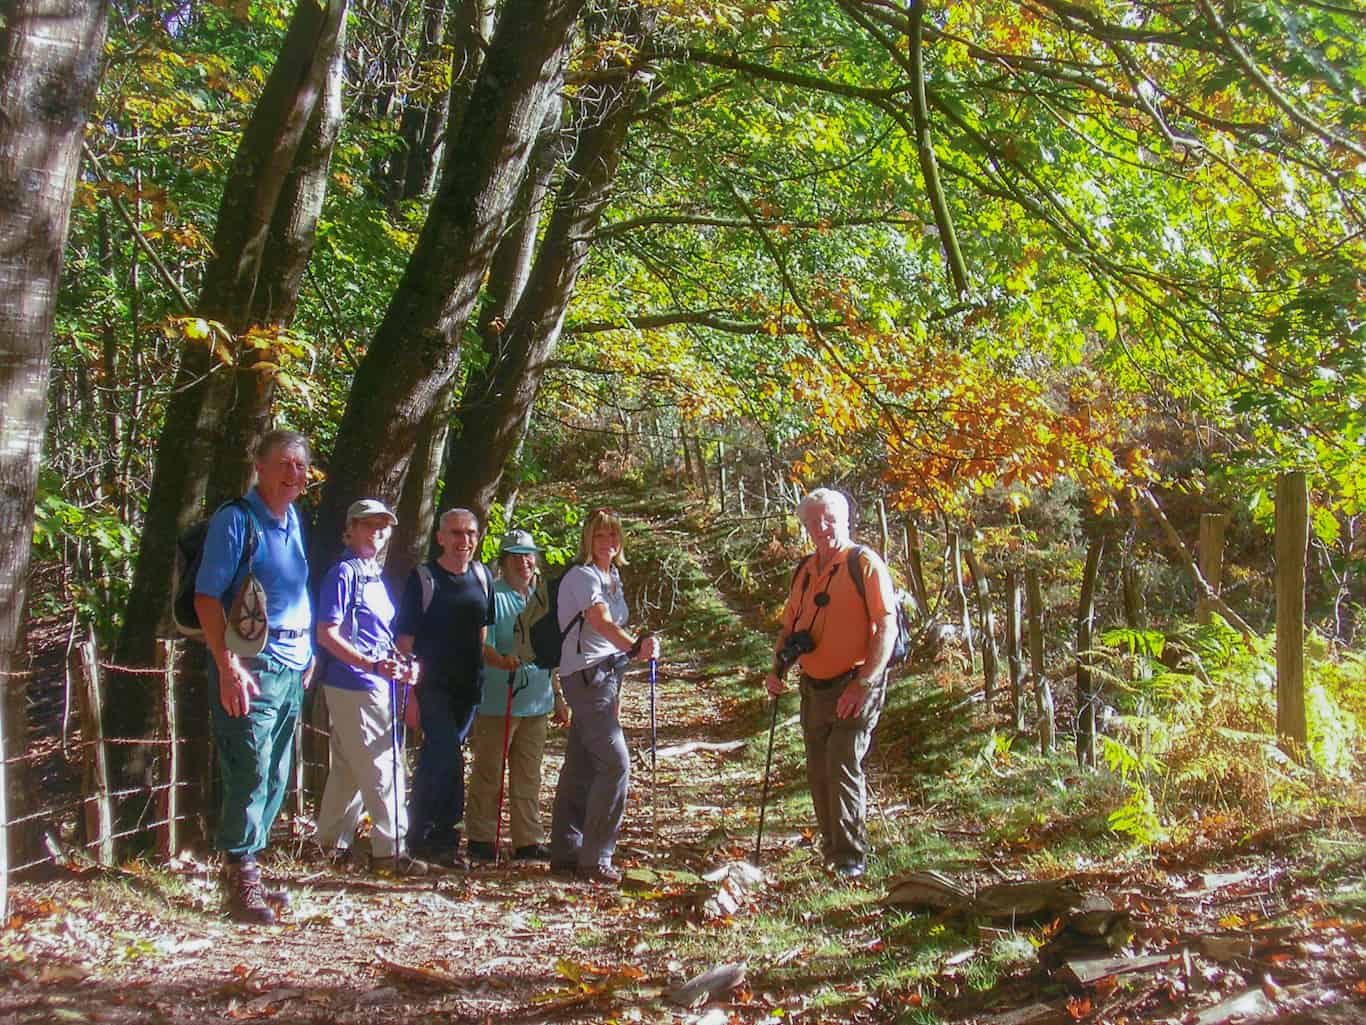 Autumn colours on our self-guided walking holidays in the Pyrenees